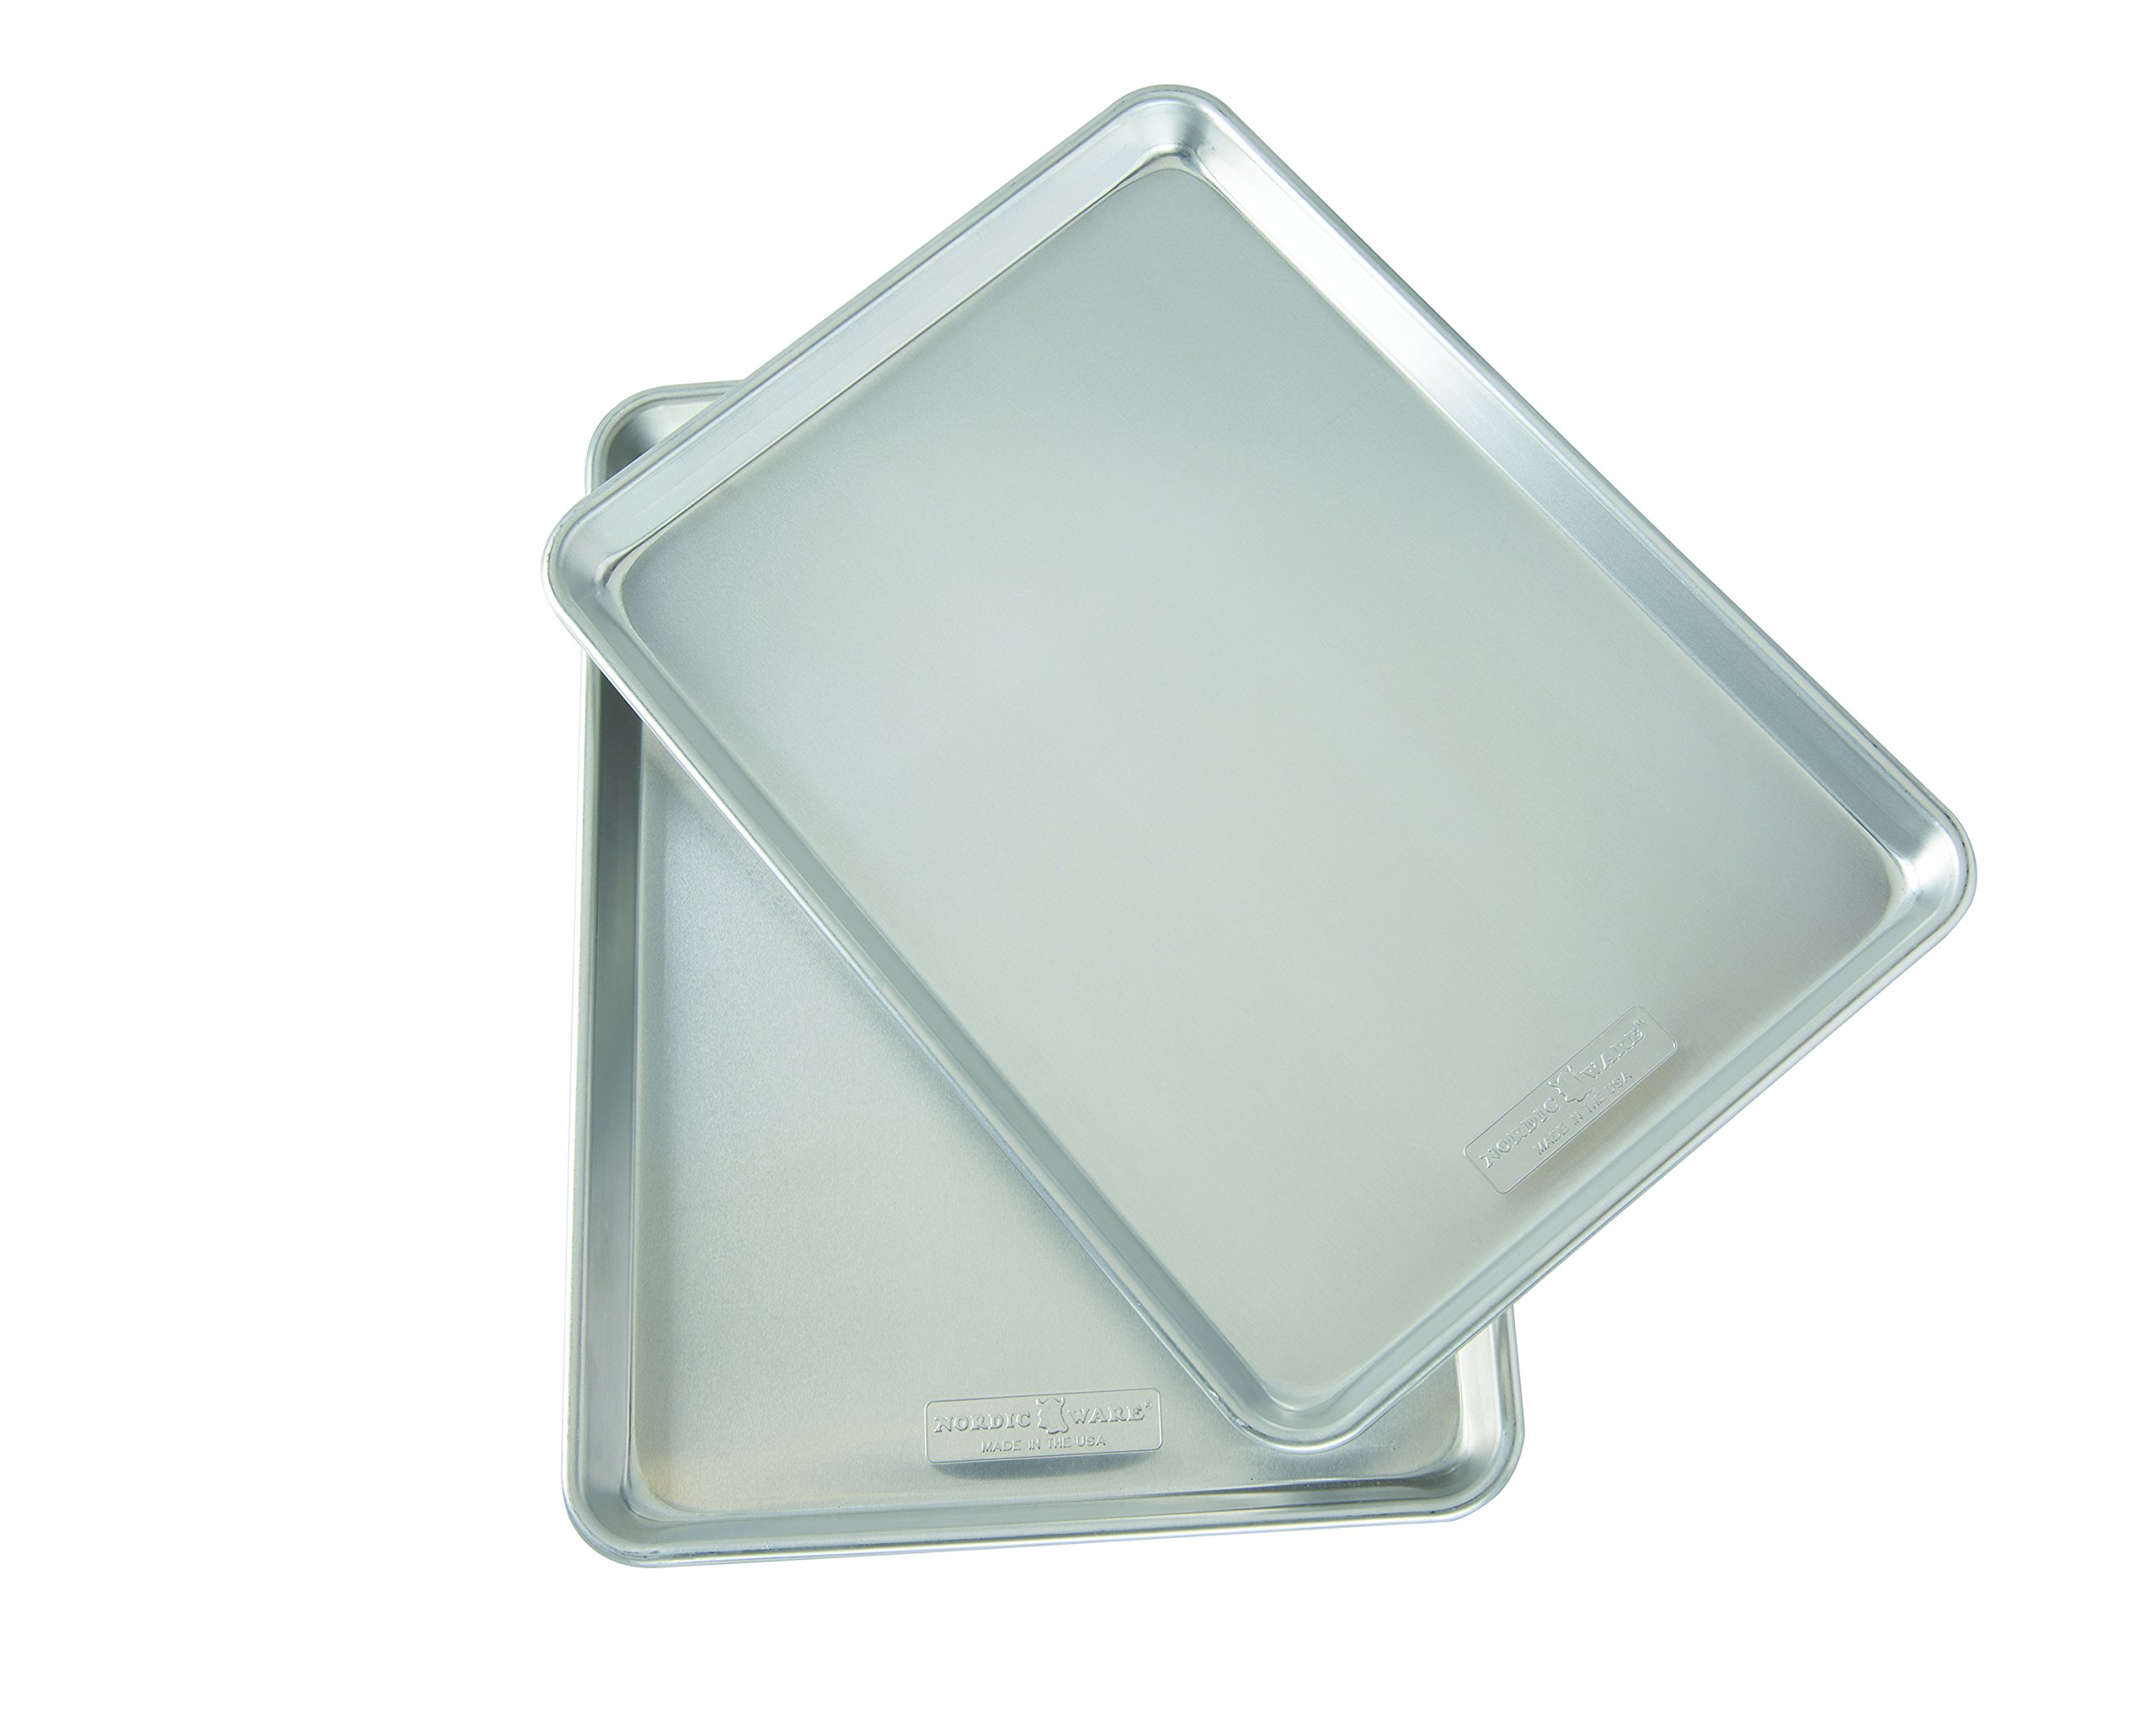 Nordicware Natural Aluminum Commercial Baker's Half Sheet (2 Pack), Silver by Nordic Ware (Image #1)